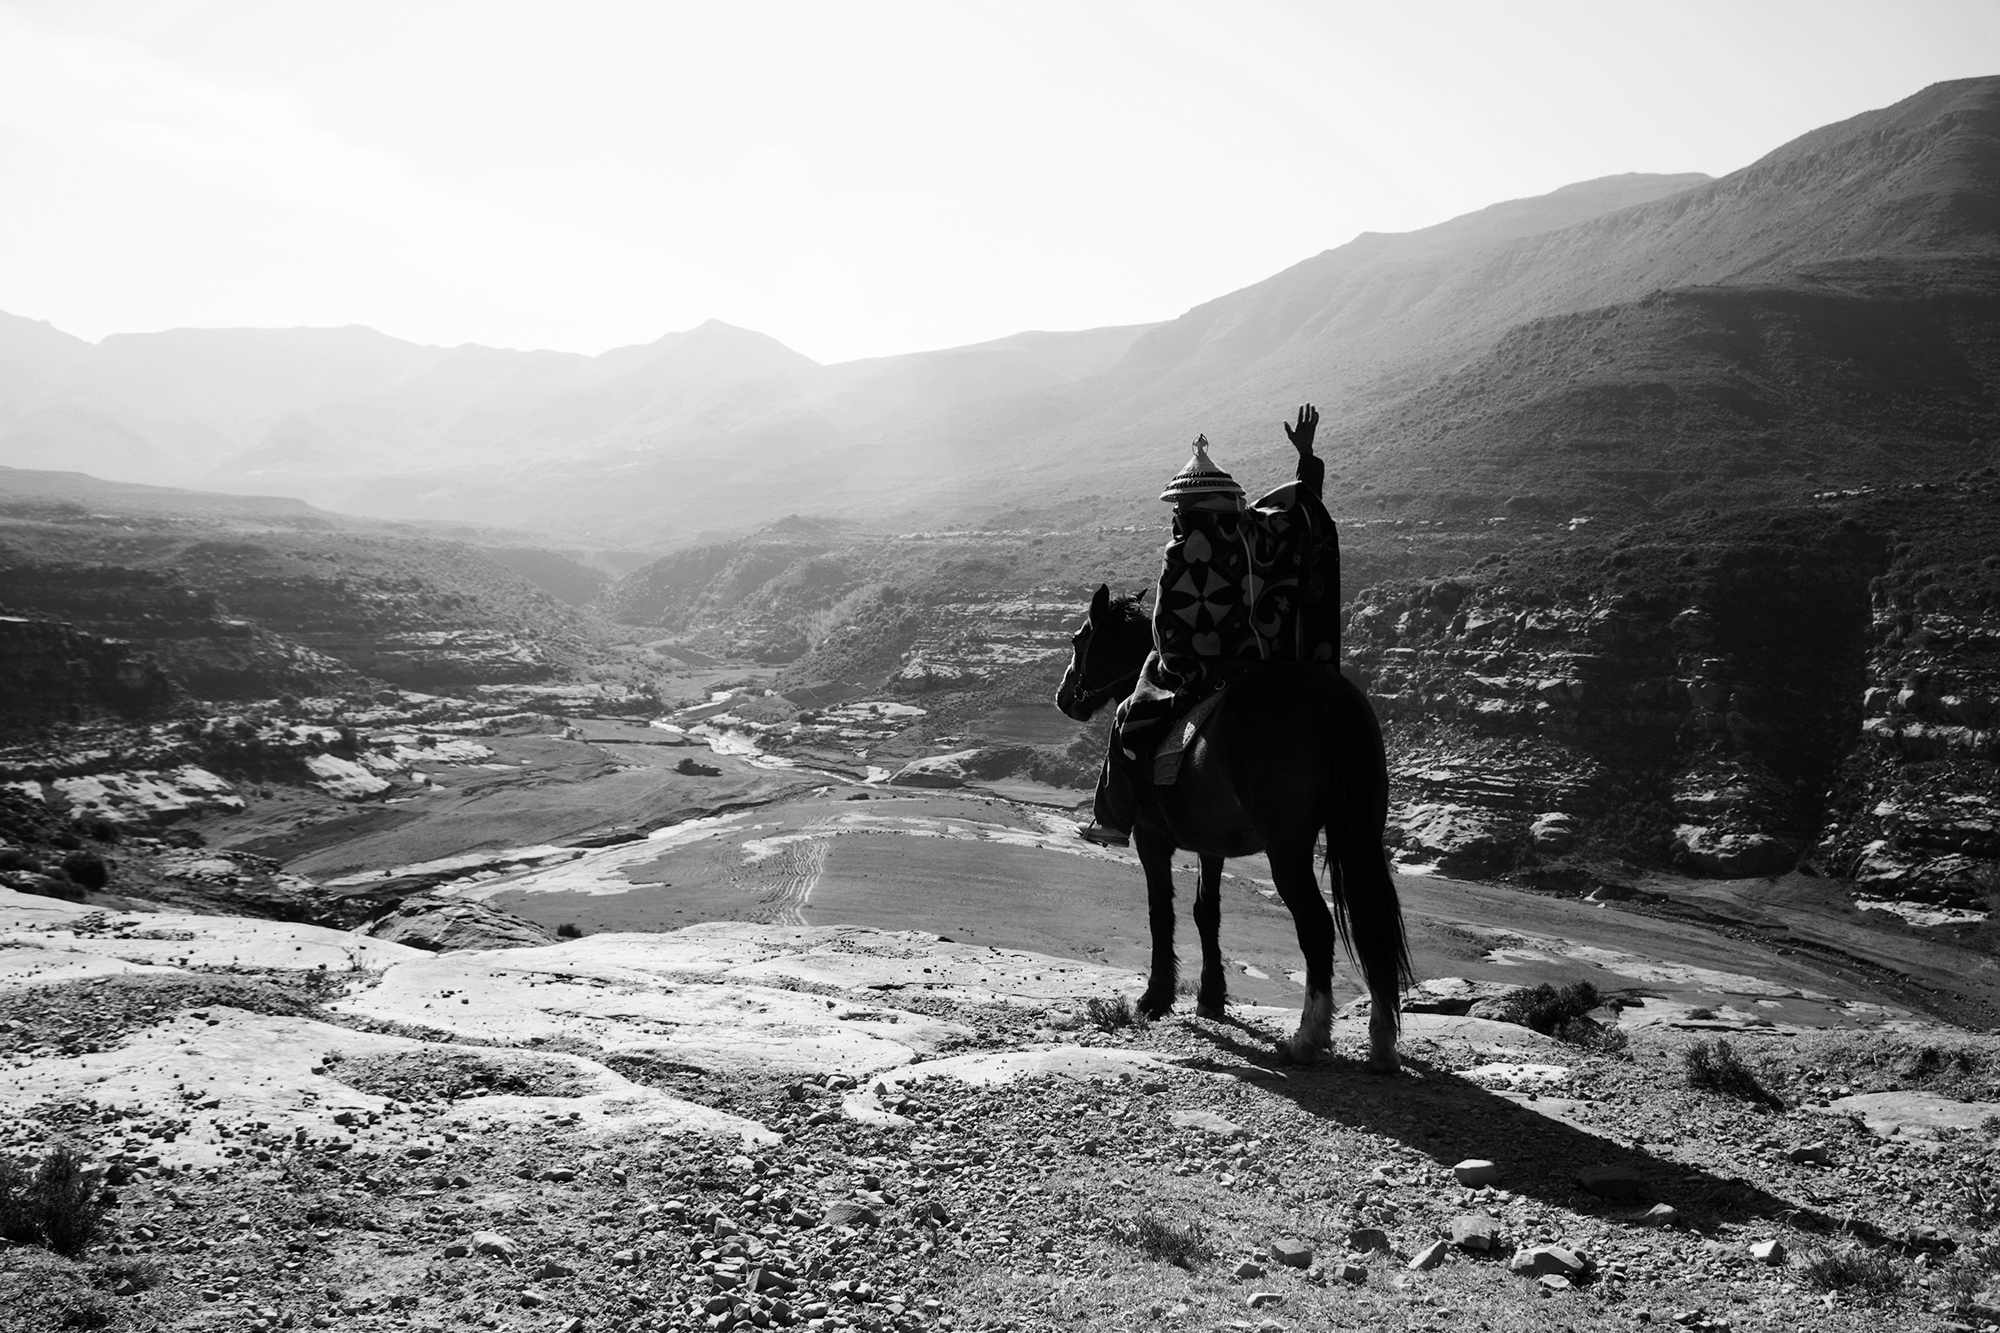 A photographable Lesotho road trip towards the Kingdom in the Sky